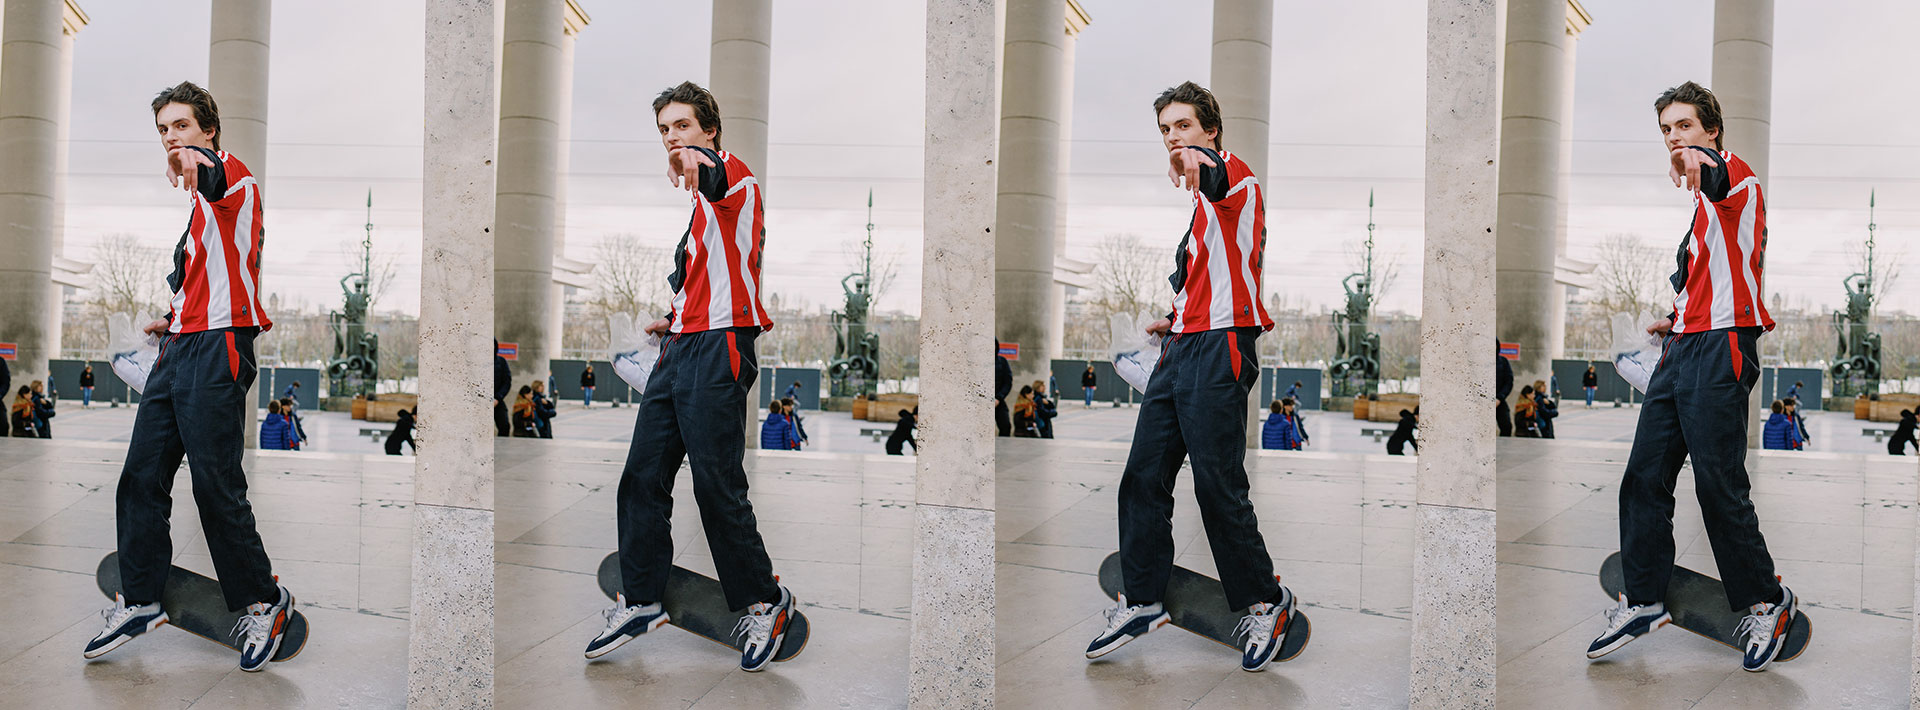 [PFW] Skaters